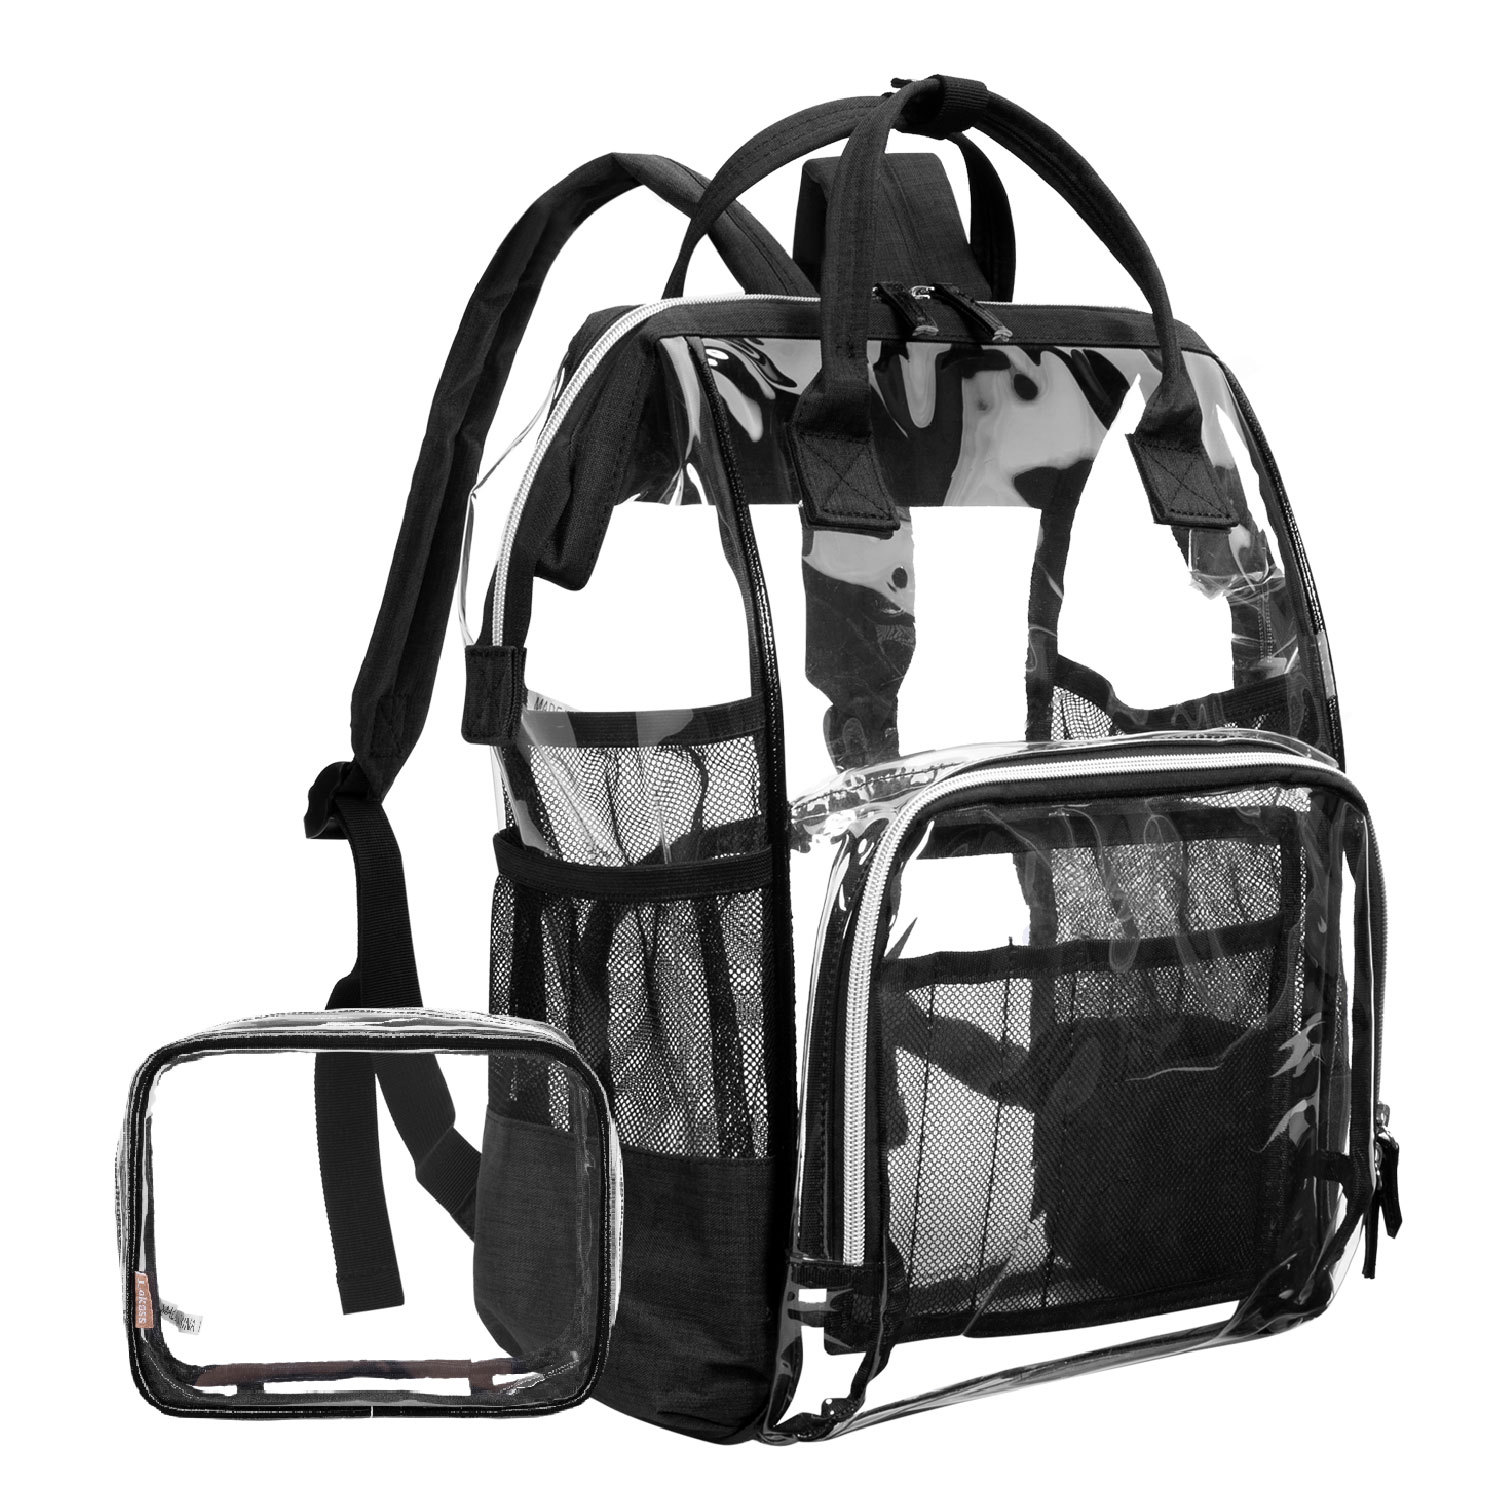 atinfor Large Clear Backpack Transparent Summer Backpacks Fit 15.6 Inch Laptop Travel Rucksack with Makeup Bagatinfor Large Clear Backpack Transparent Summer Backpacks Fit 15.6 Inch Laptop Travel Rucksack with Makeup Bag